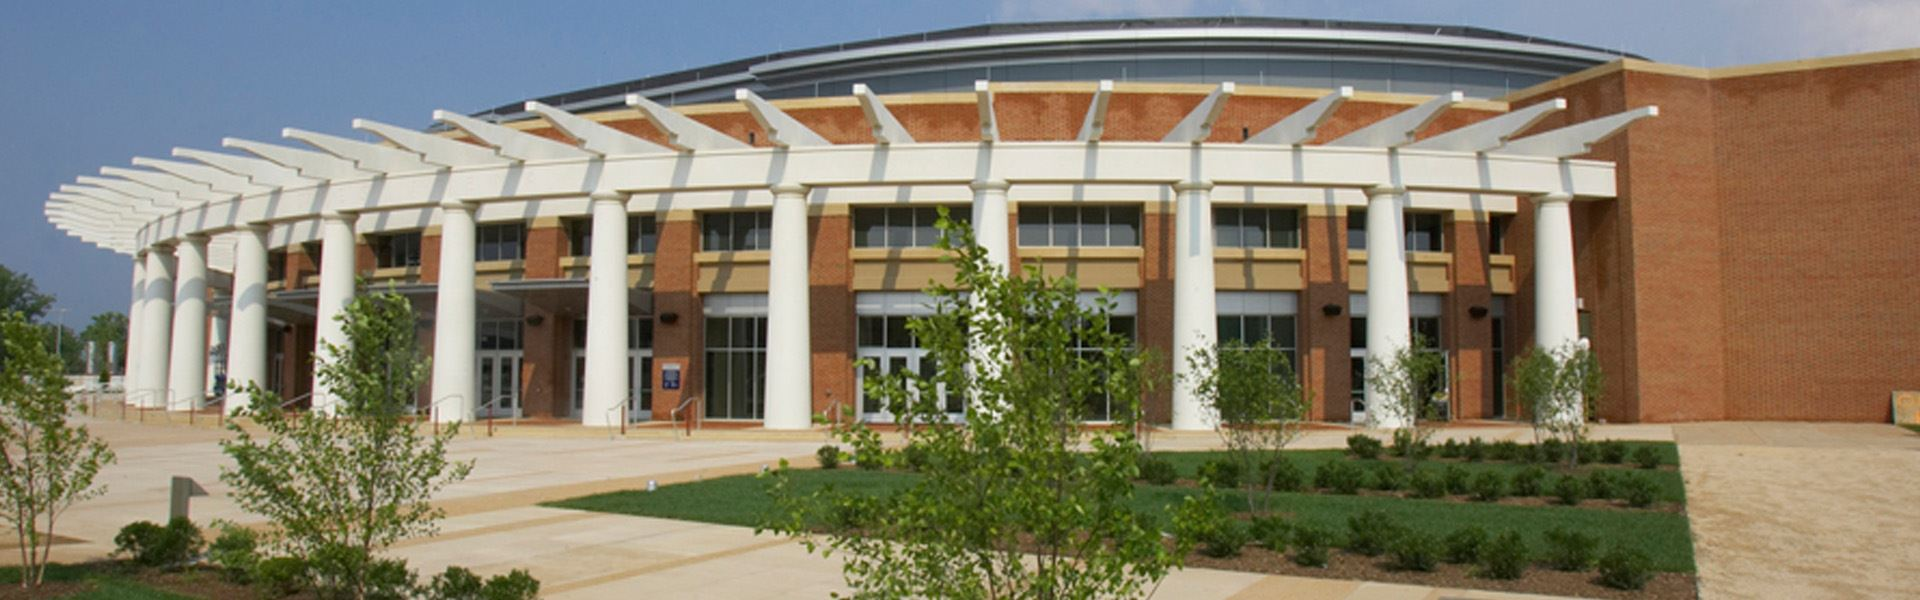 Exterior Side Angle of John Paul Jones Arena